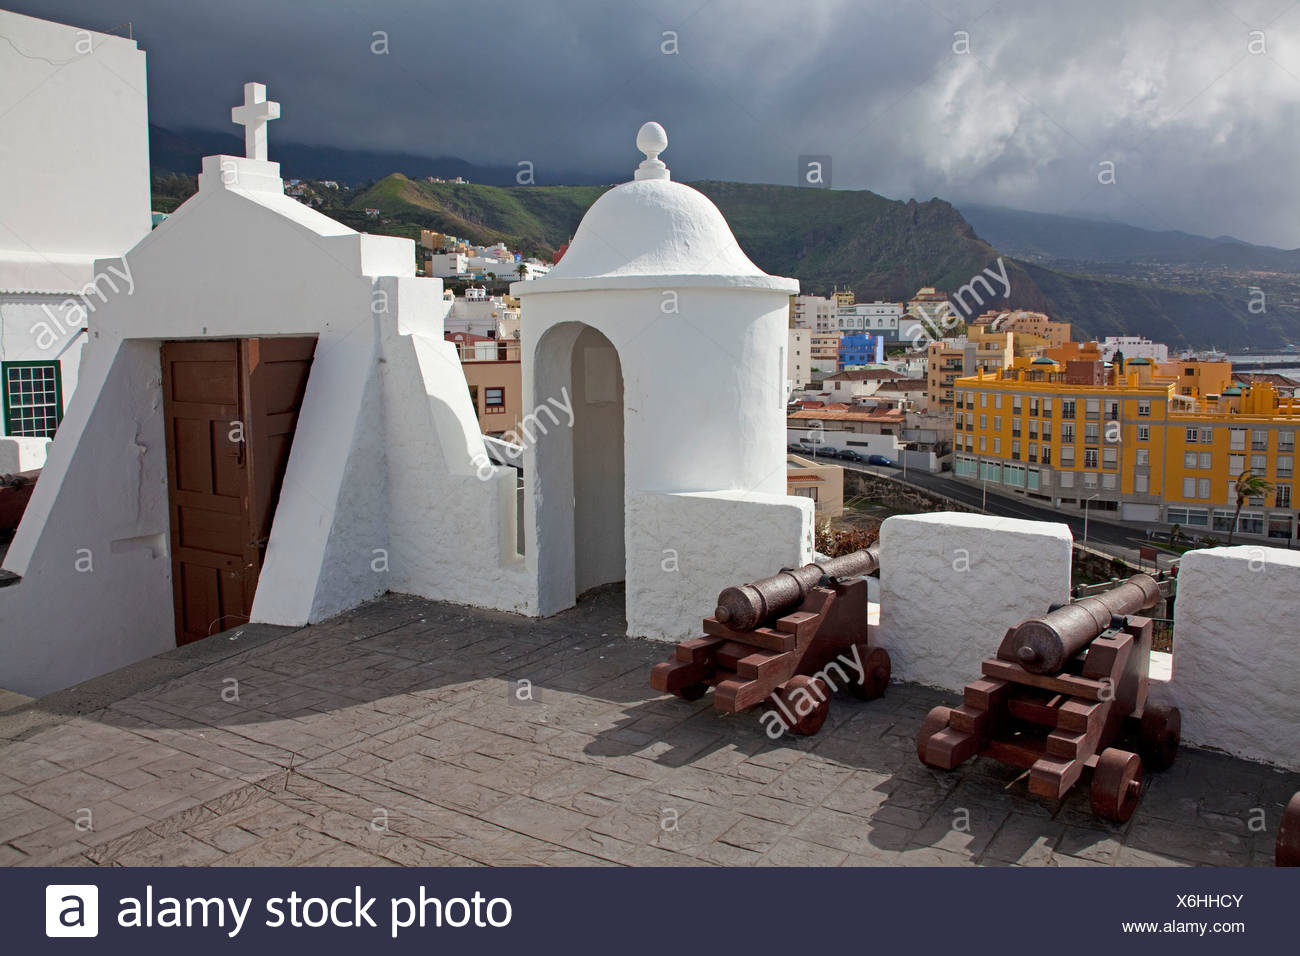 The fortress Castillo de Santa Catalina, Santa Cruz de la Palma, La Palma, Canary Islands, Spain, Europe, Atlantic Ocean - Stock Image